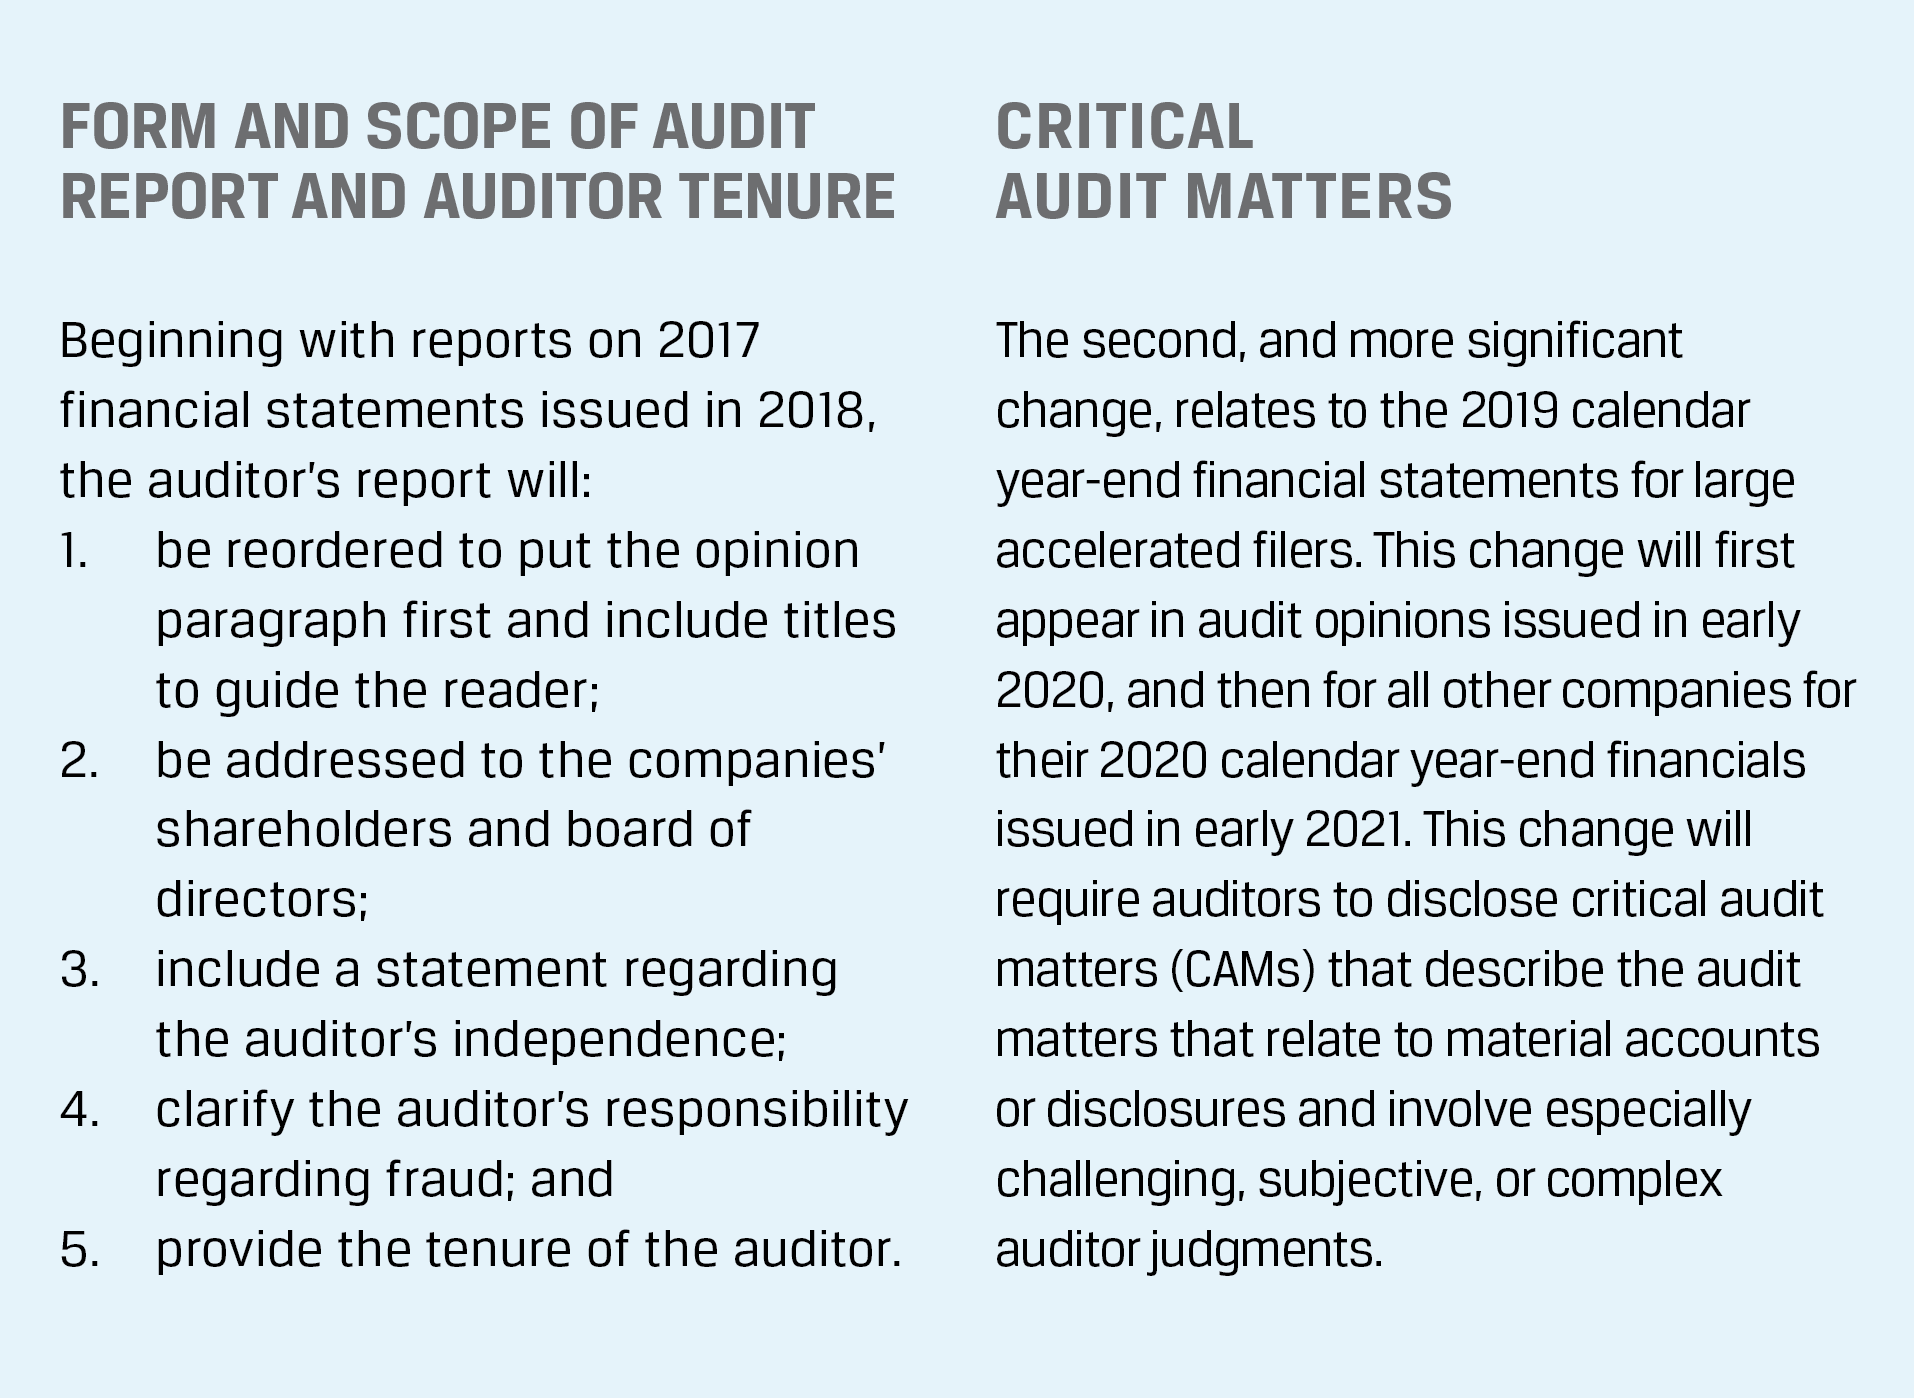 Form and Scope of Audit Report and Auditor Tenure